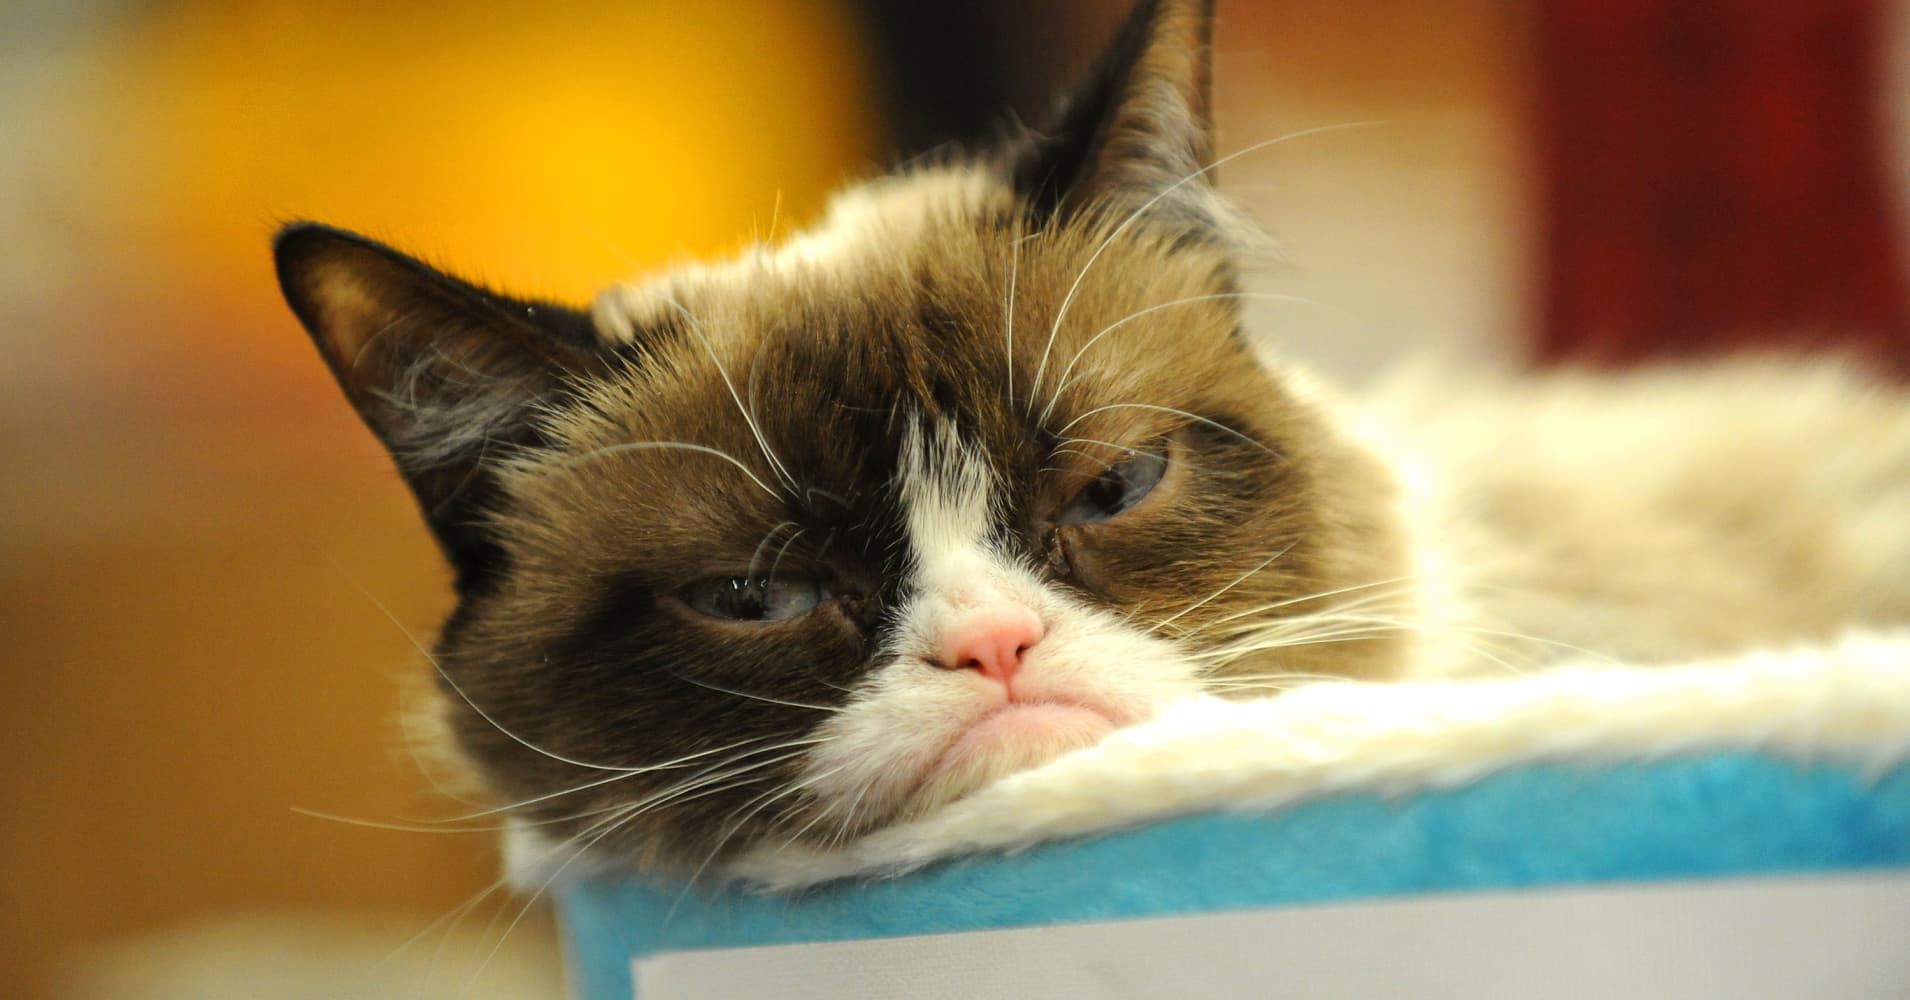 Image of: Movie Grumpy Cat Bbccom Grumpy Cat Won Lawsuit Plus Other Viral Stars Making Big Money